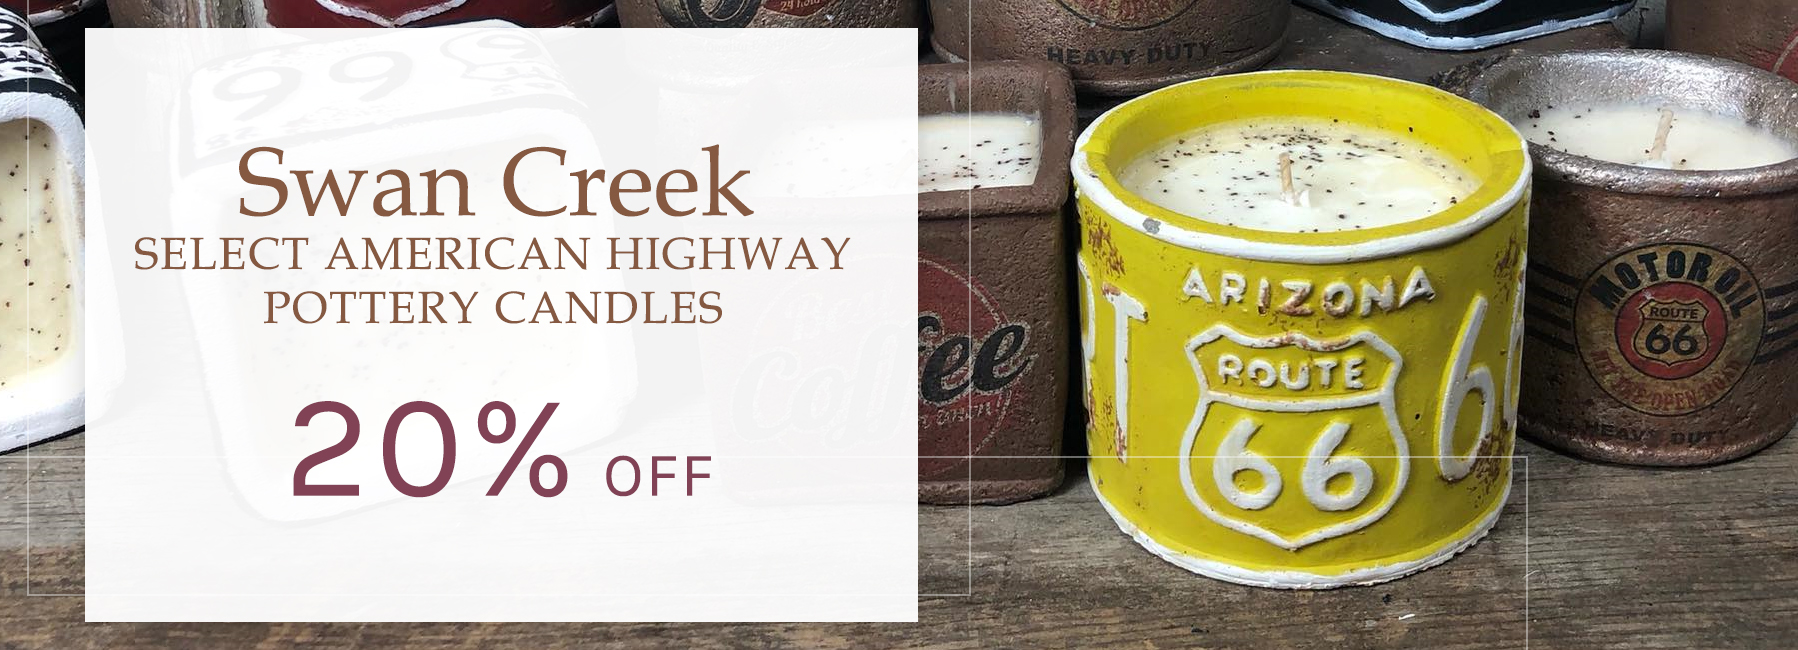 Swan Creek - Select American Highway Pottery Candles - 20 Percent OFF